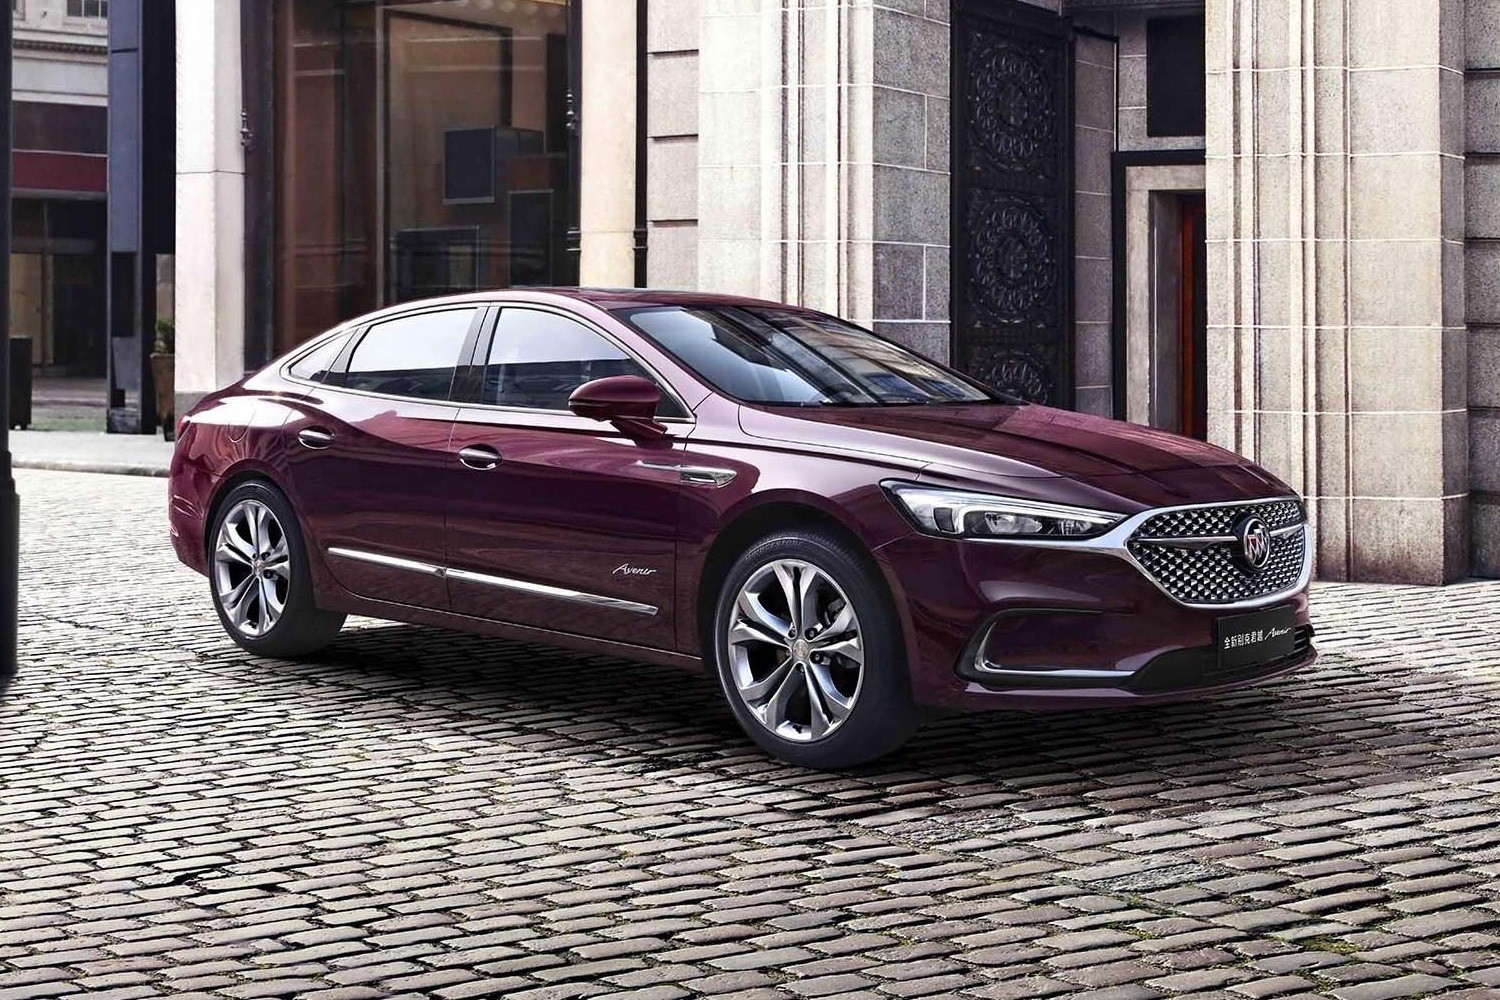 2020 Buick Lacrosse Info, Specs, Wiki | Gm Authority New 2021 Buick Regal Brochure, Build, Models